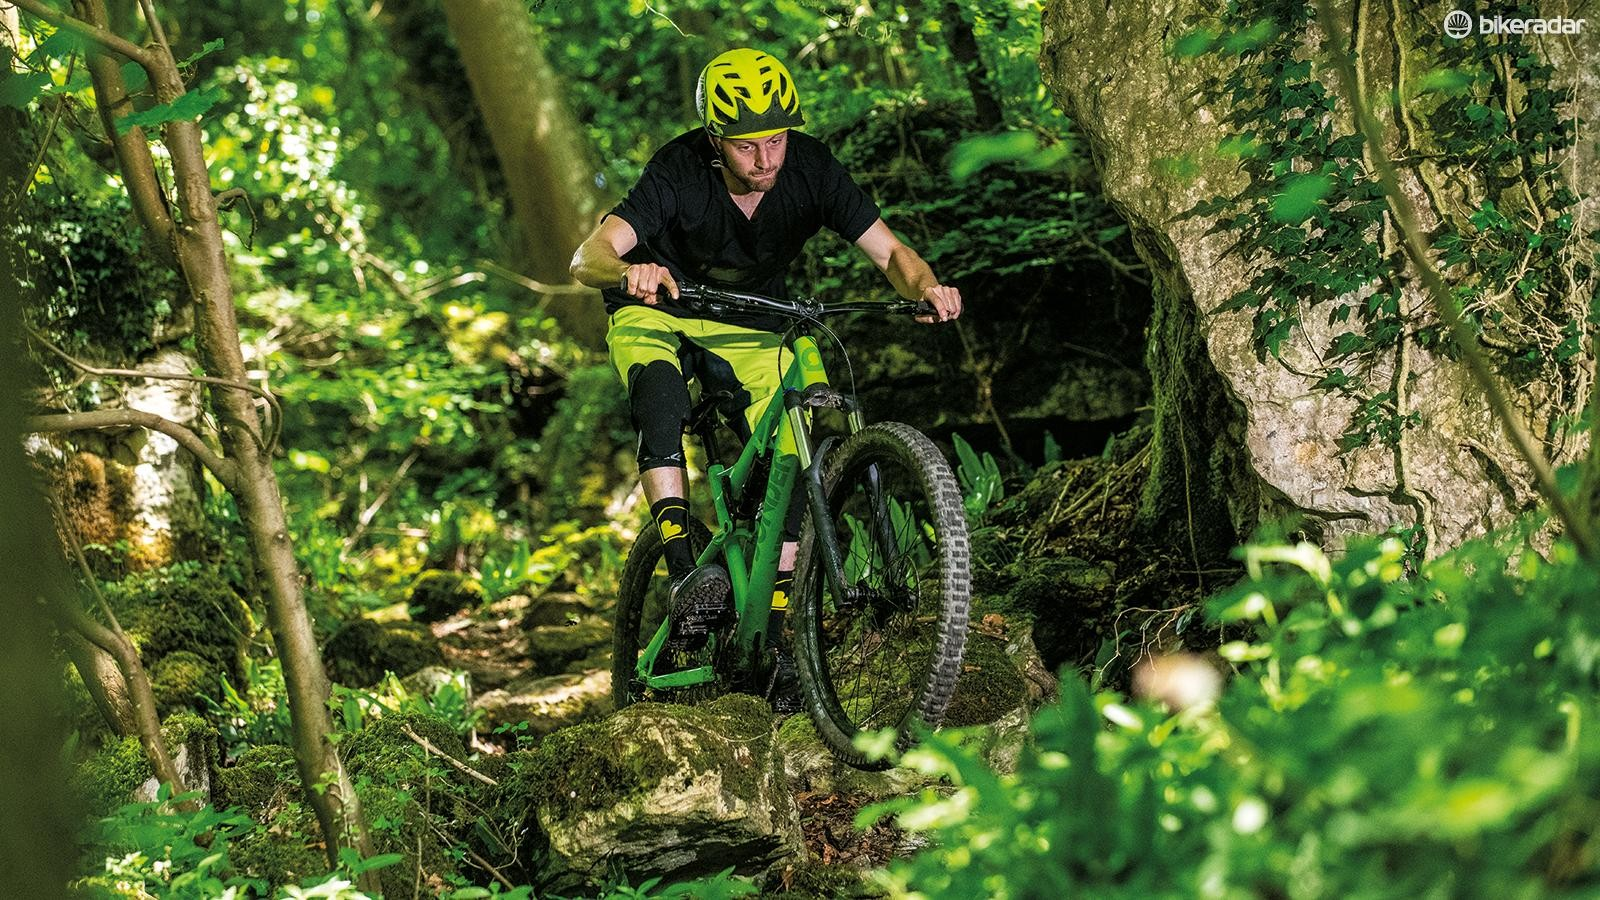 Sonder's tight-tracking, hard-driving Evol frame gives a quality feel at a reasonable price